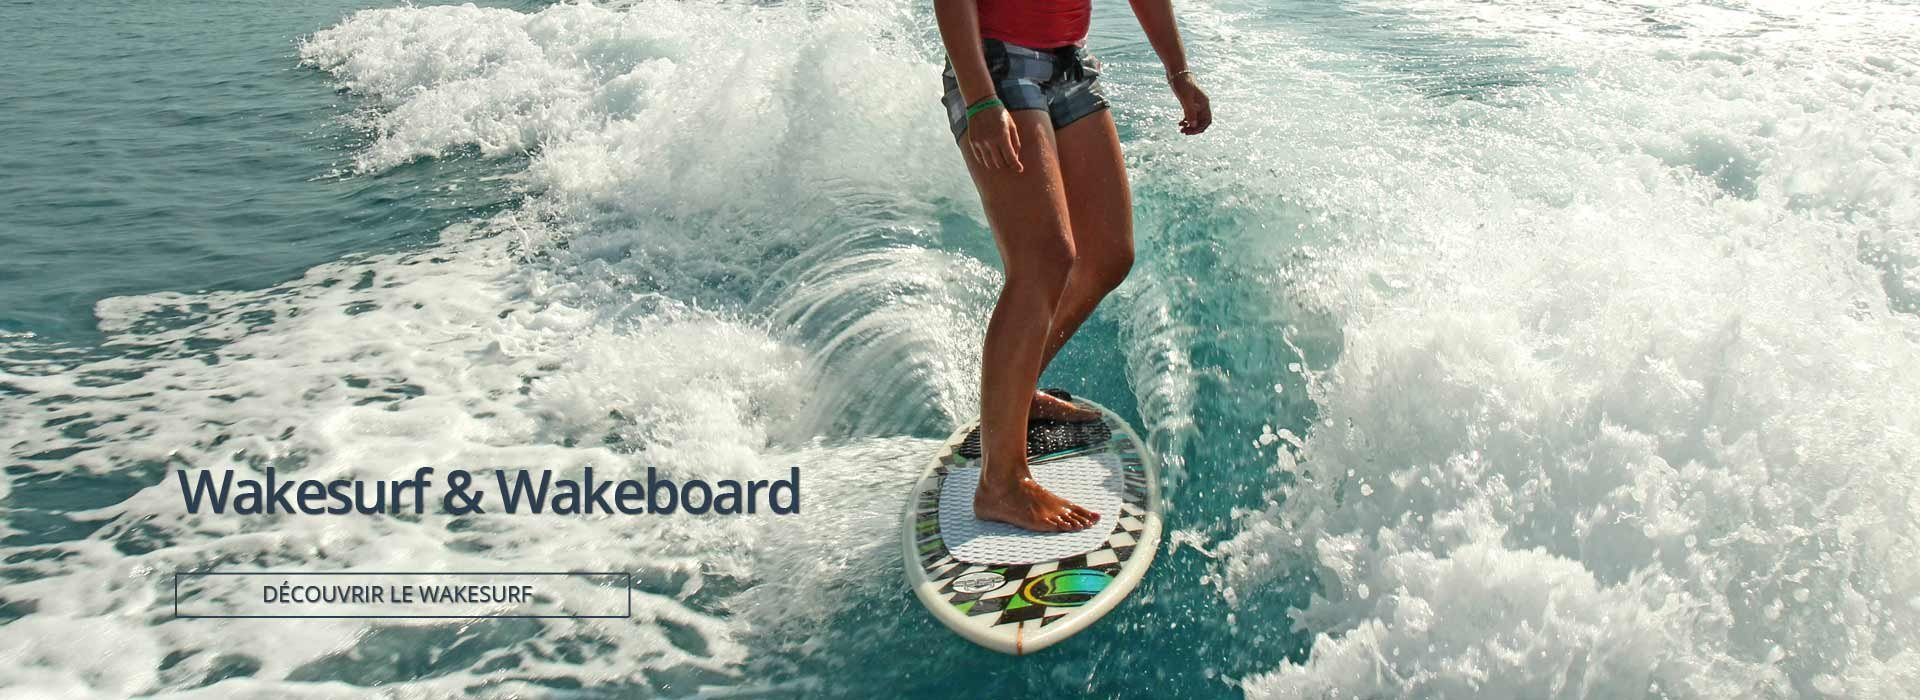 Wakesurf & Wakeboard à Cagnes sur Mer